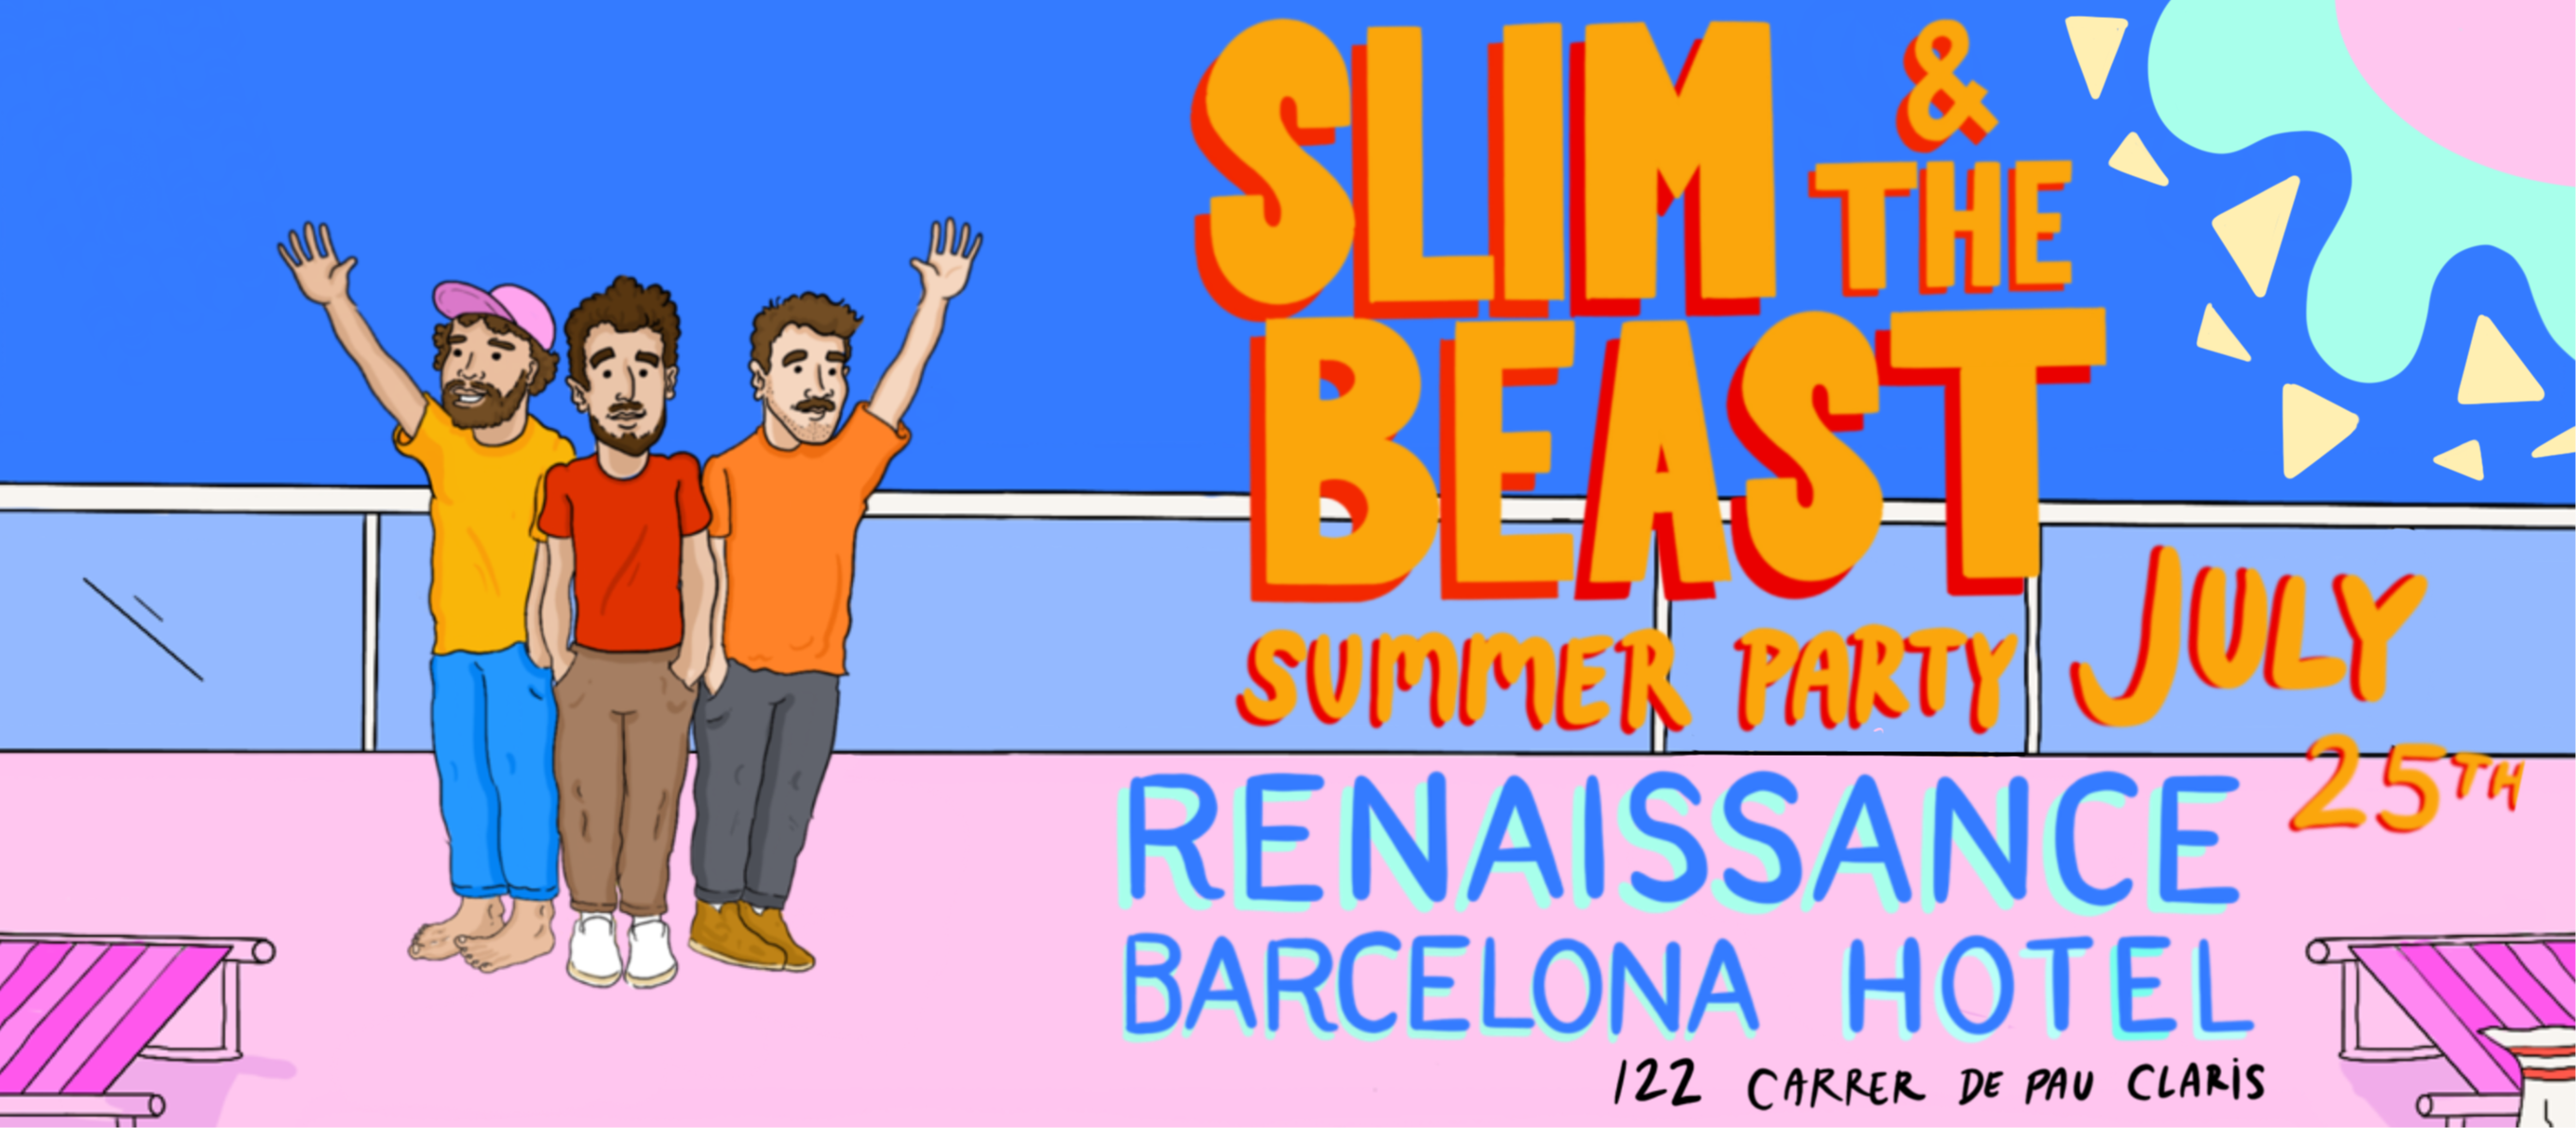 Summer Party w/Slim & The Beast - Club Goja Rooftop Experience